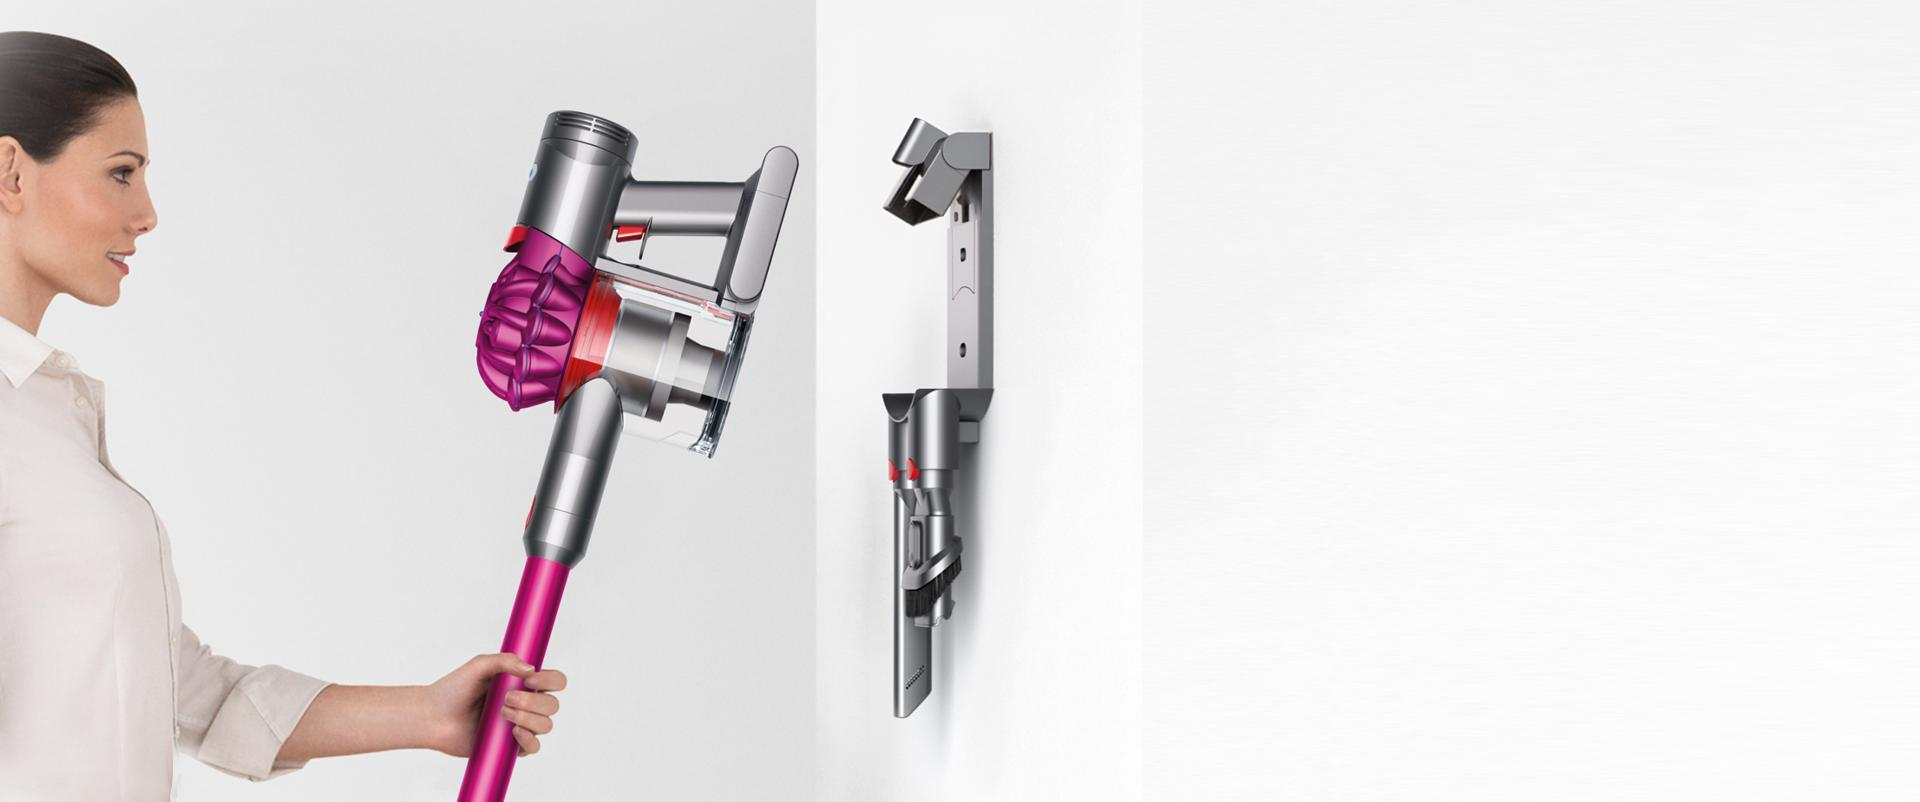 Dyson vacuum wall-mounted dock